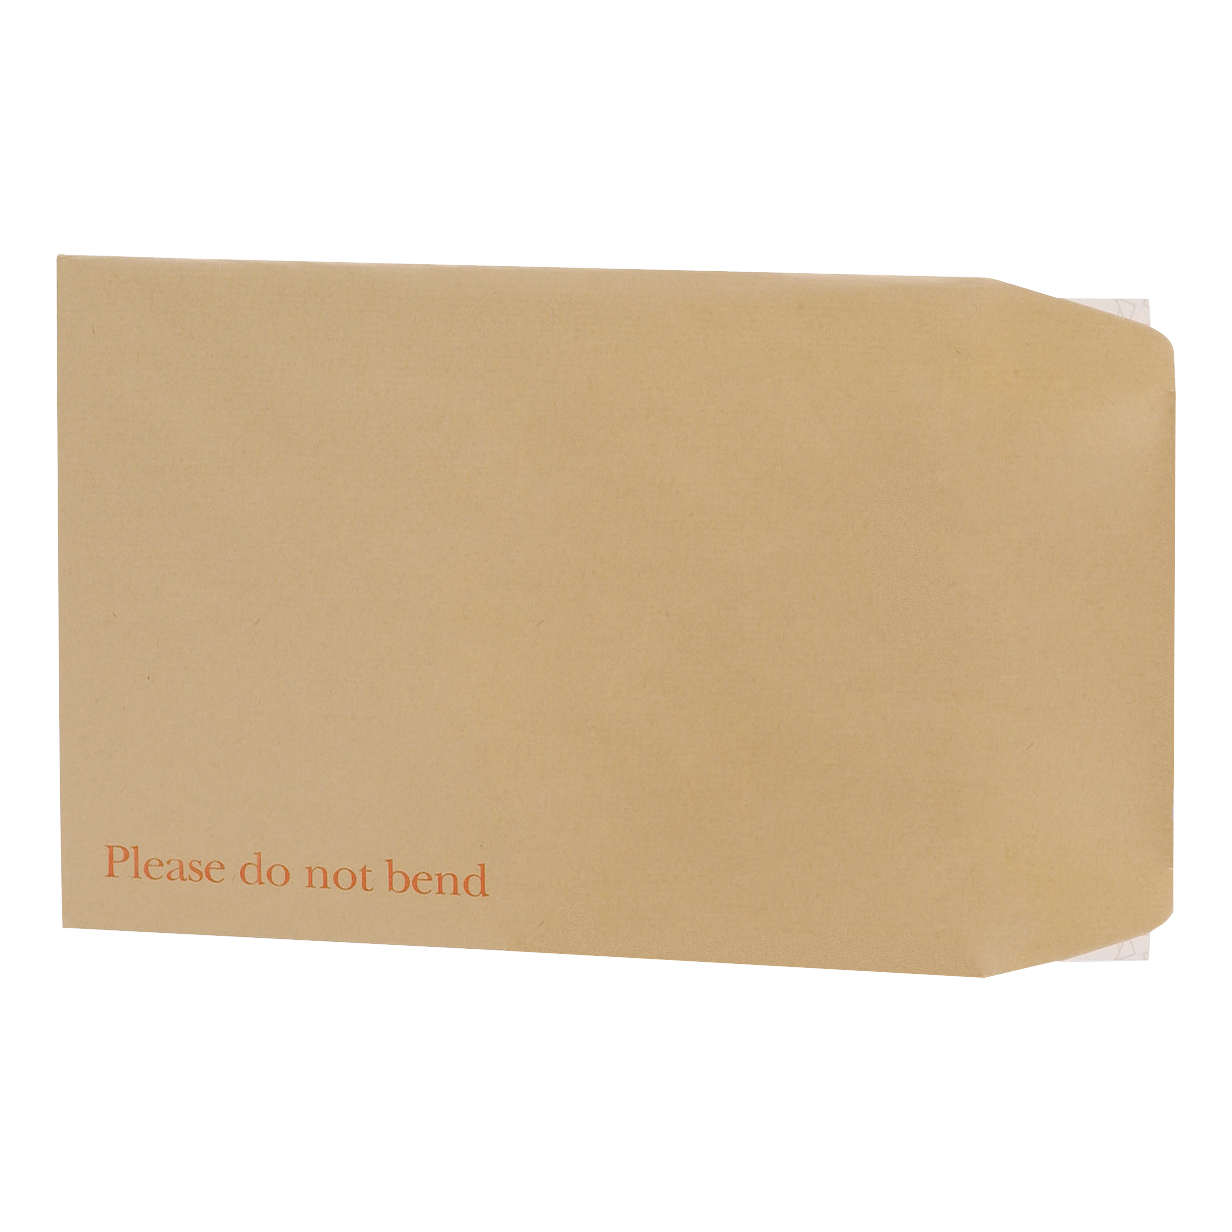 5 Star Office Envelopes Recycled Board Backed Hot Melt Peel & Seal C4 324x229mm 120gsm Manilla Pack 125